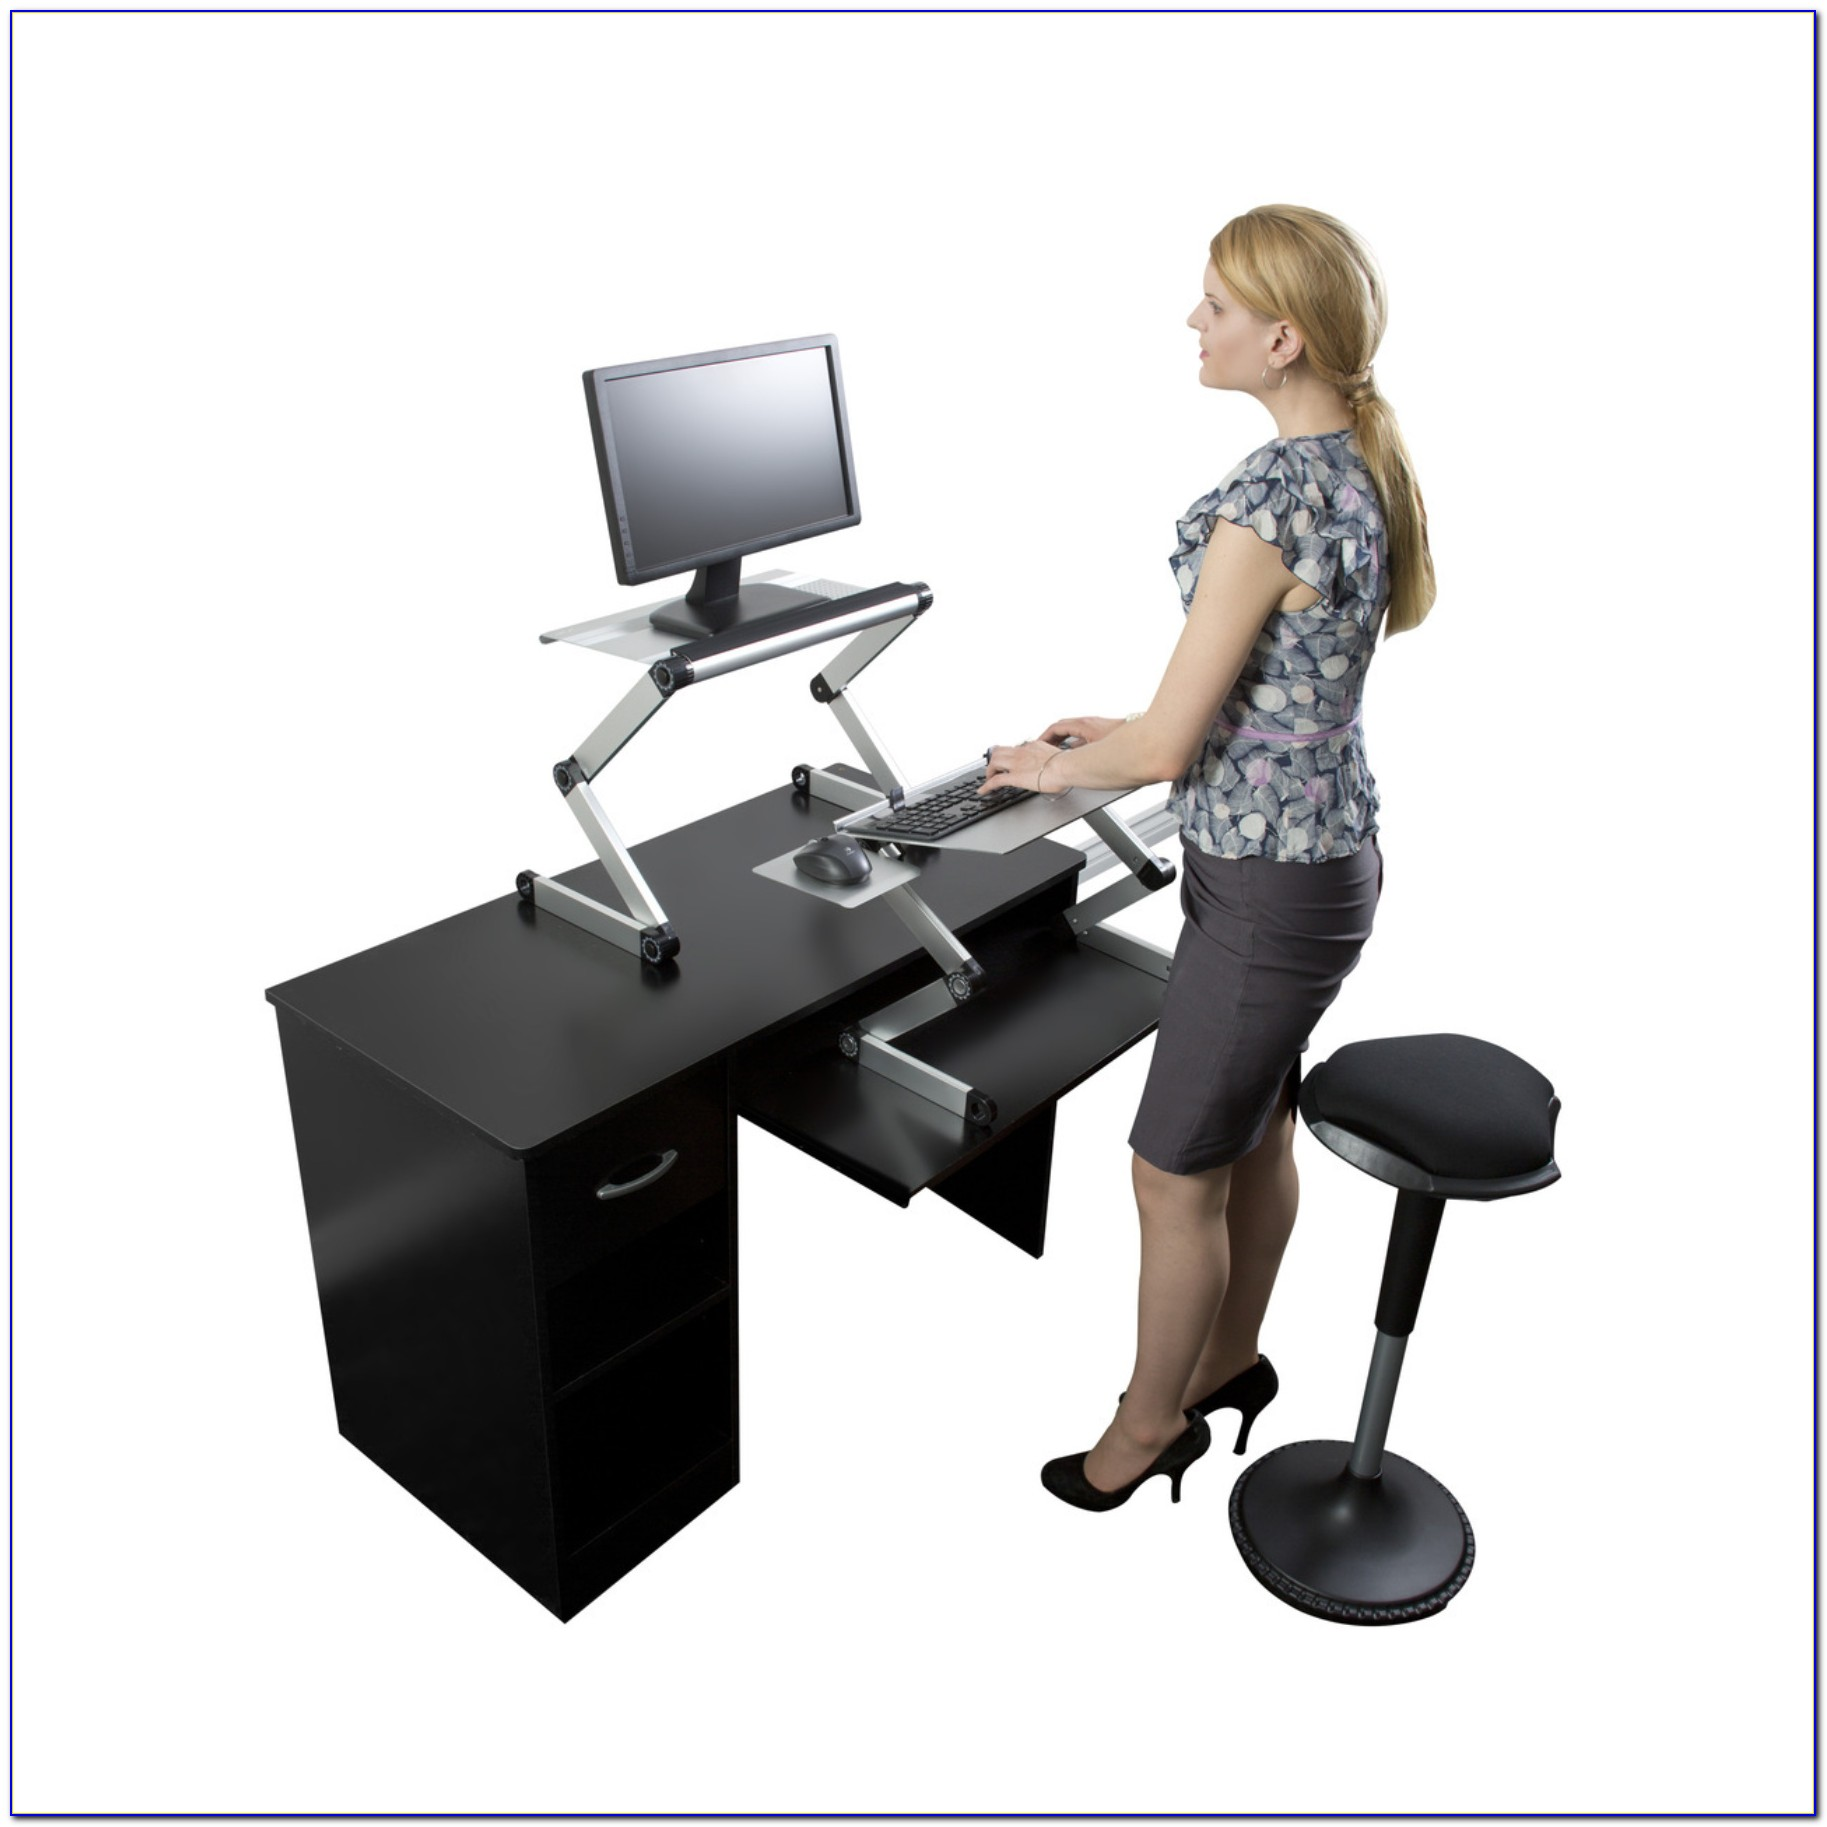 Convert Sitting Desk To Standing Desk